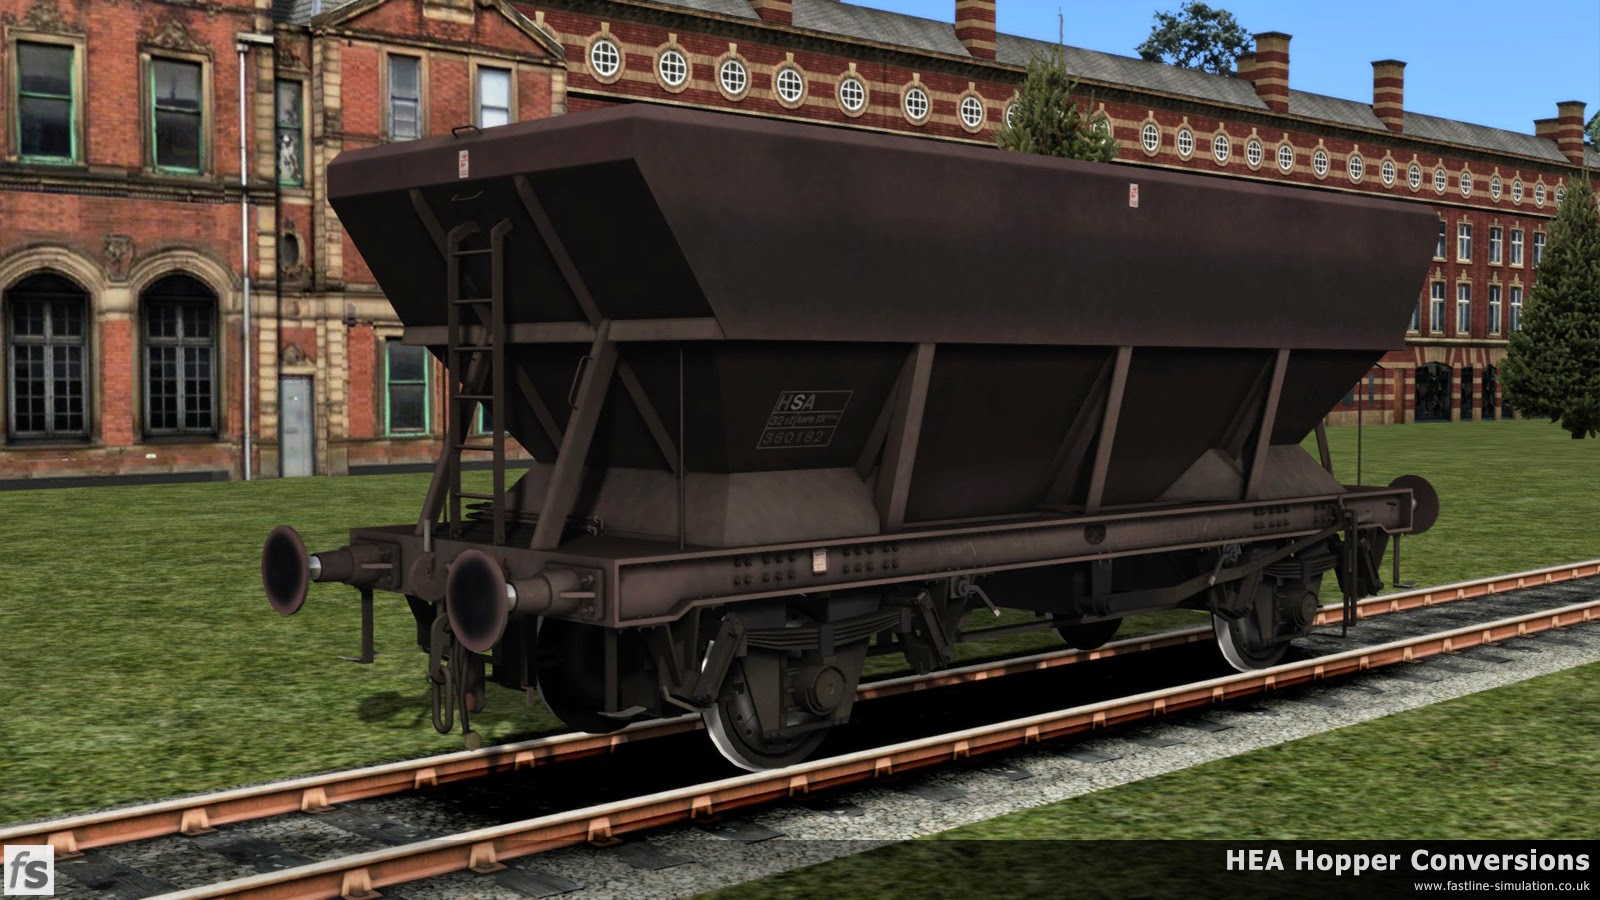 Fastline Simulation - HEA Conversions: An earlier built HEA hopper with central ladder has managed to cling on to it's maroon livery but has been converted to an HSA scrap wagon. It can be assumed that conversion in this case has involved welding a plate across the hopper bottoms to provide a level base to the wagon as only the TOPS code has been changed.